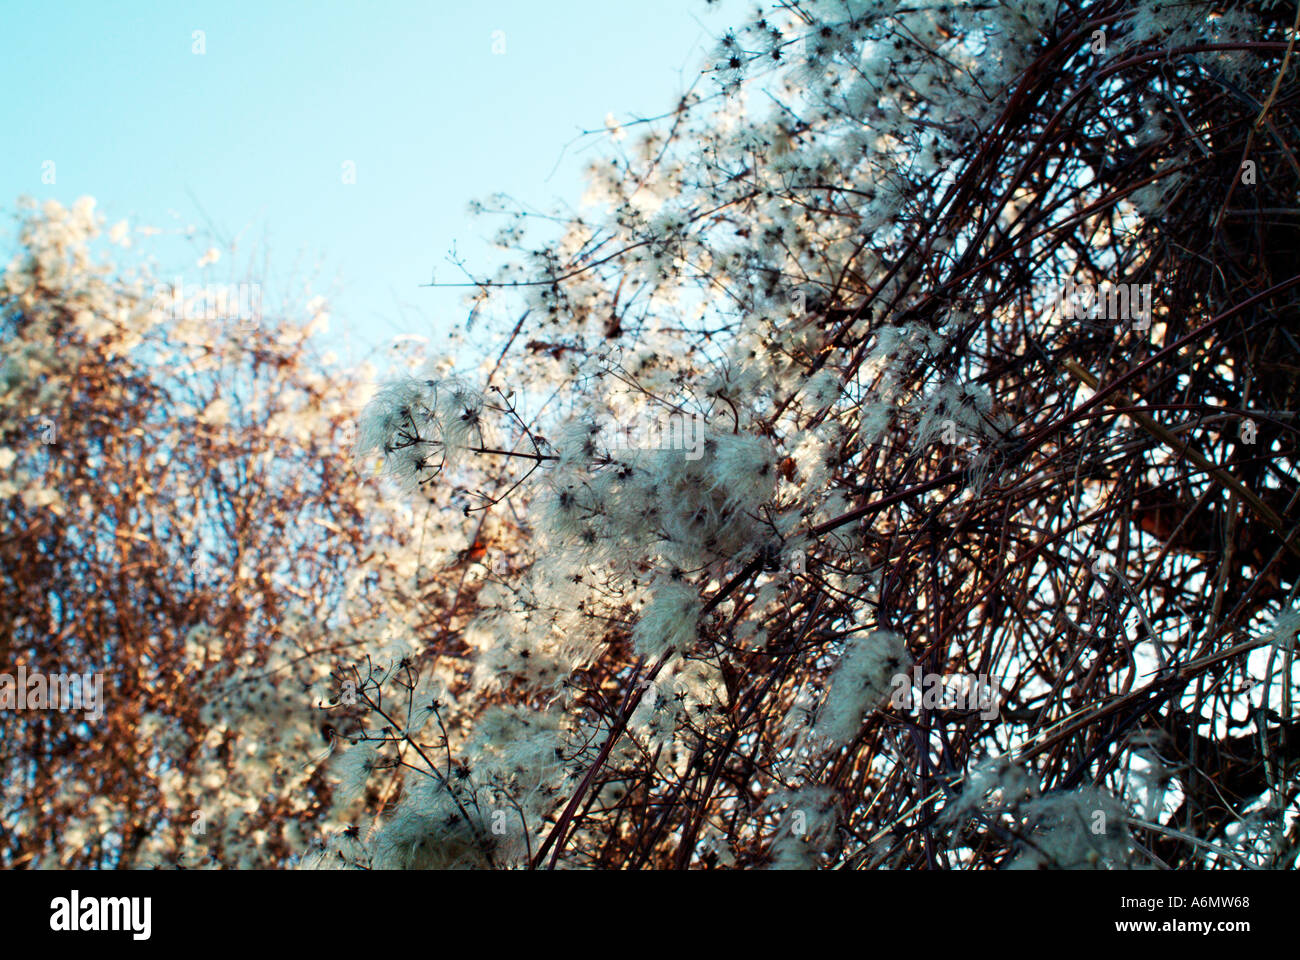 Winter Texture - Stock Image